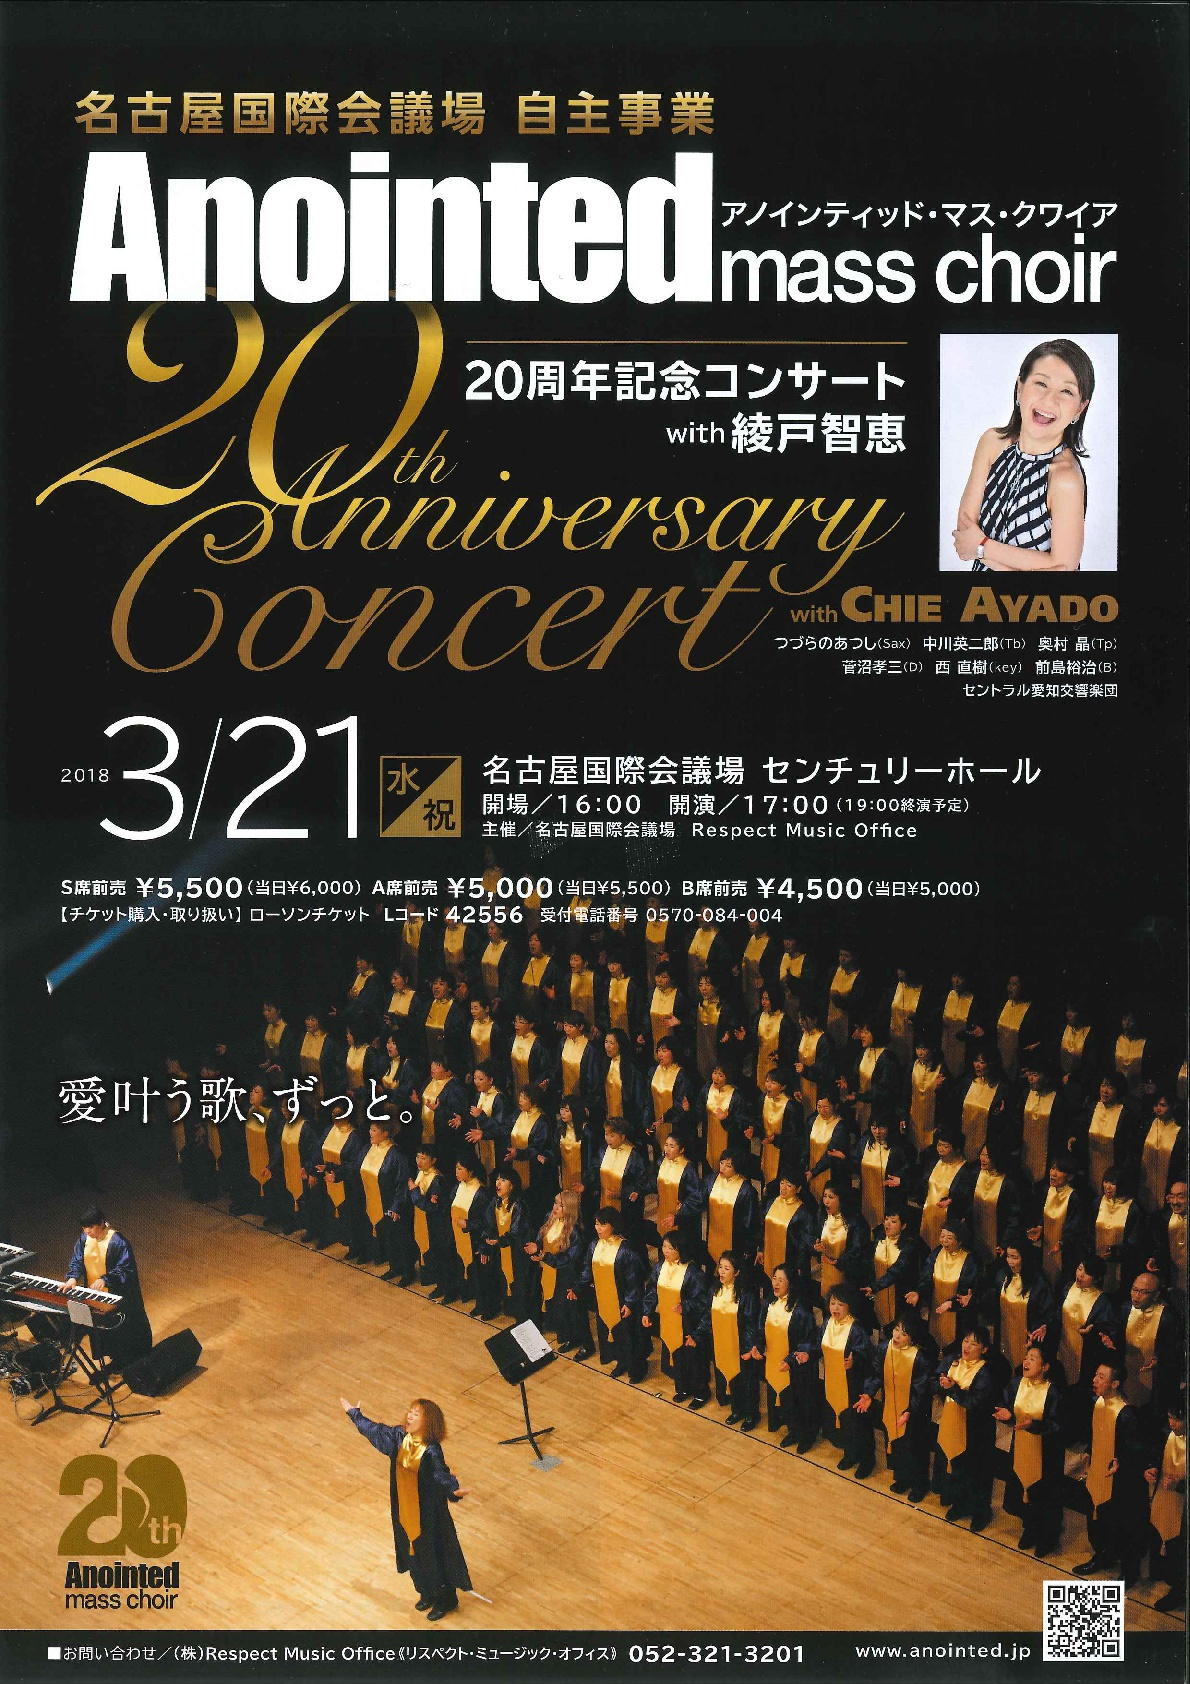 Anointed mass choir 20周年記念コンサート with 綾戸智恵